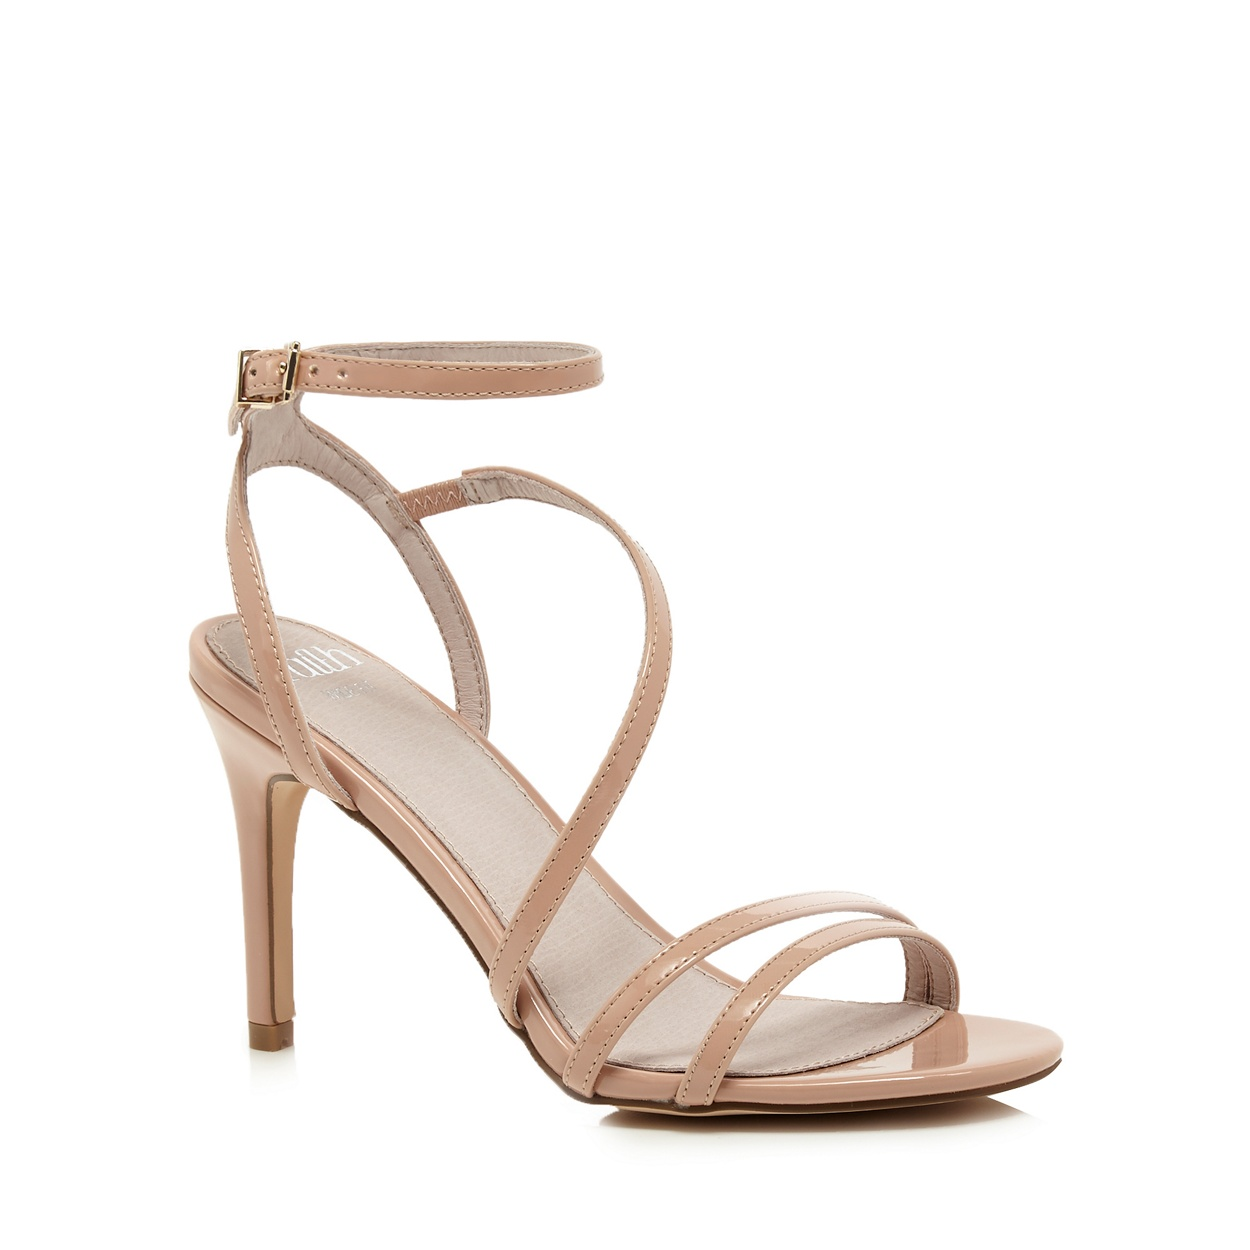 Women's sandals debenhams - Faith Cream Patent Dilly High Heel Wide Fit Ankle Strap Sandals